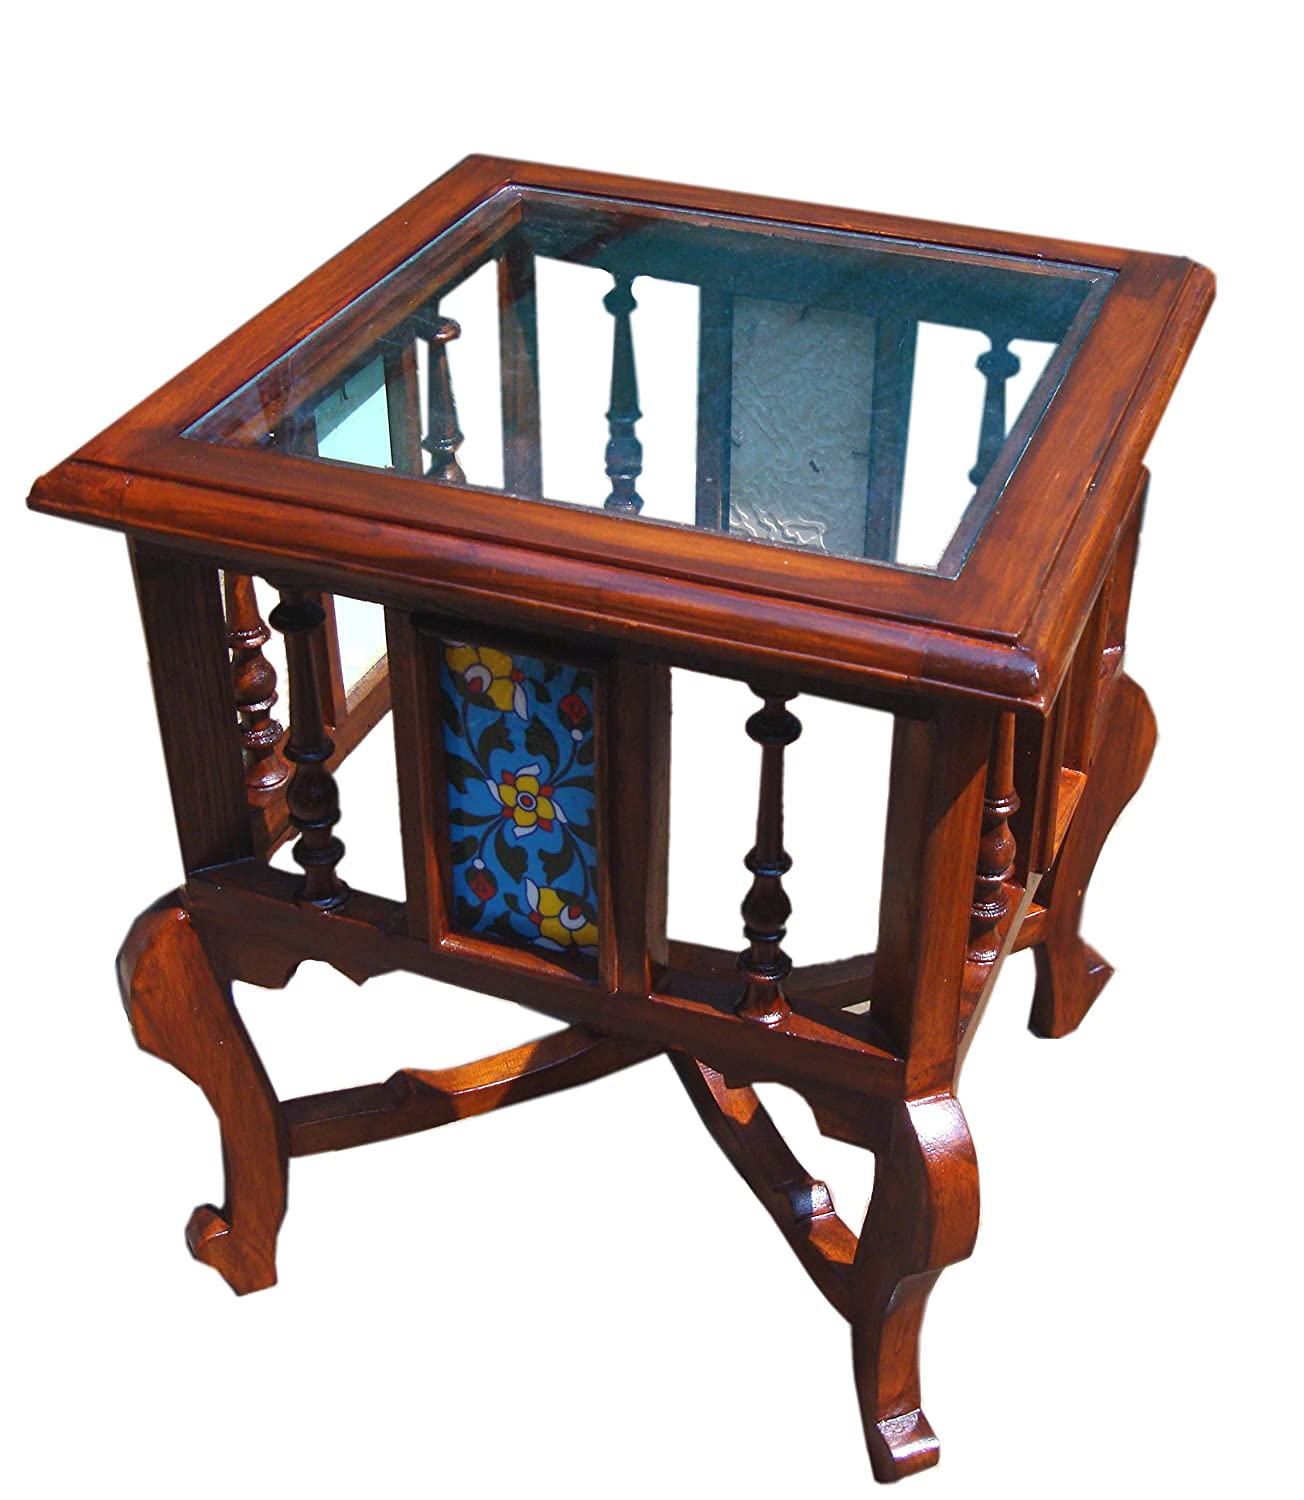 Teak Wood Traditional Antique Look Corner Small Coffee Table with Glass Top (Brown, 18x15x15-inch)